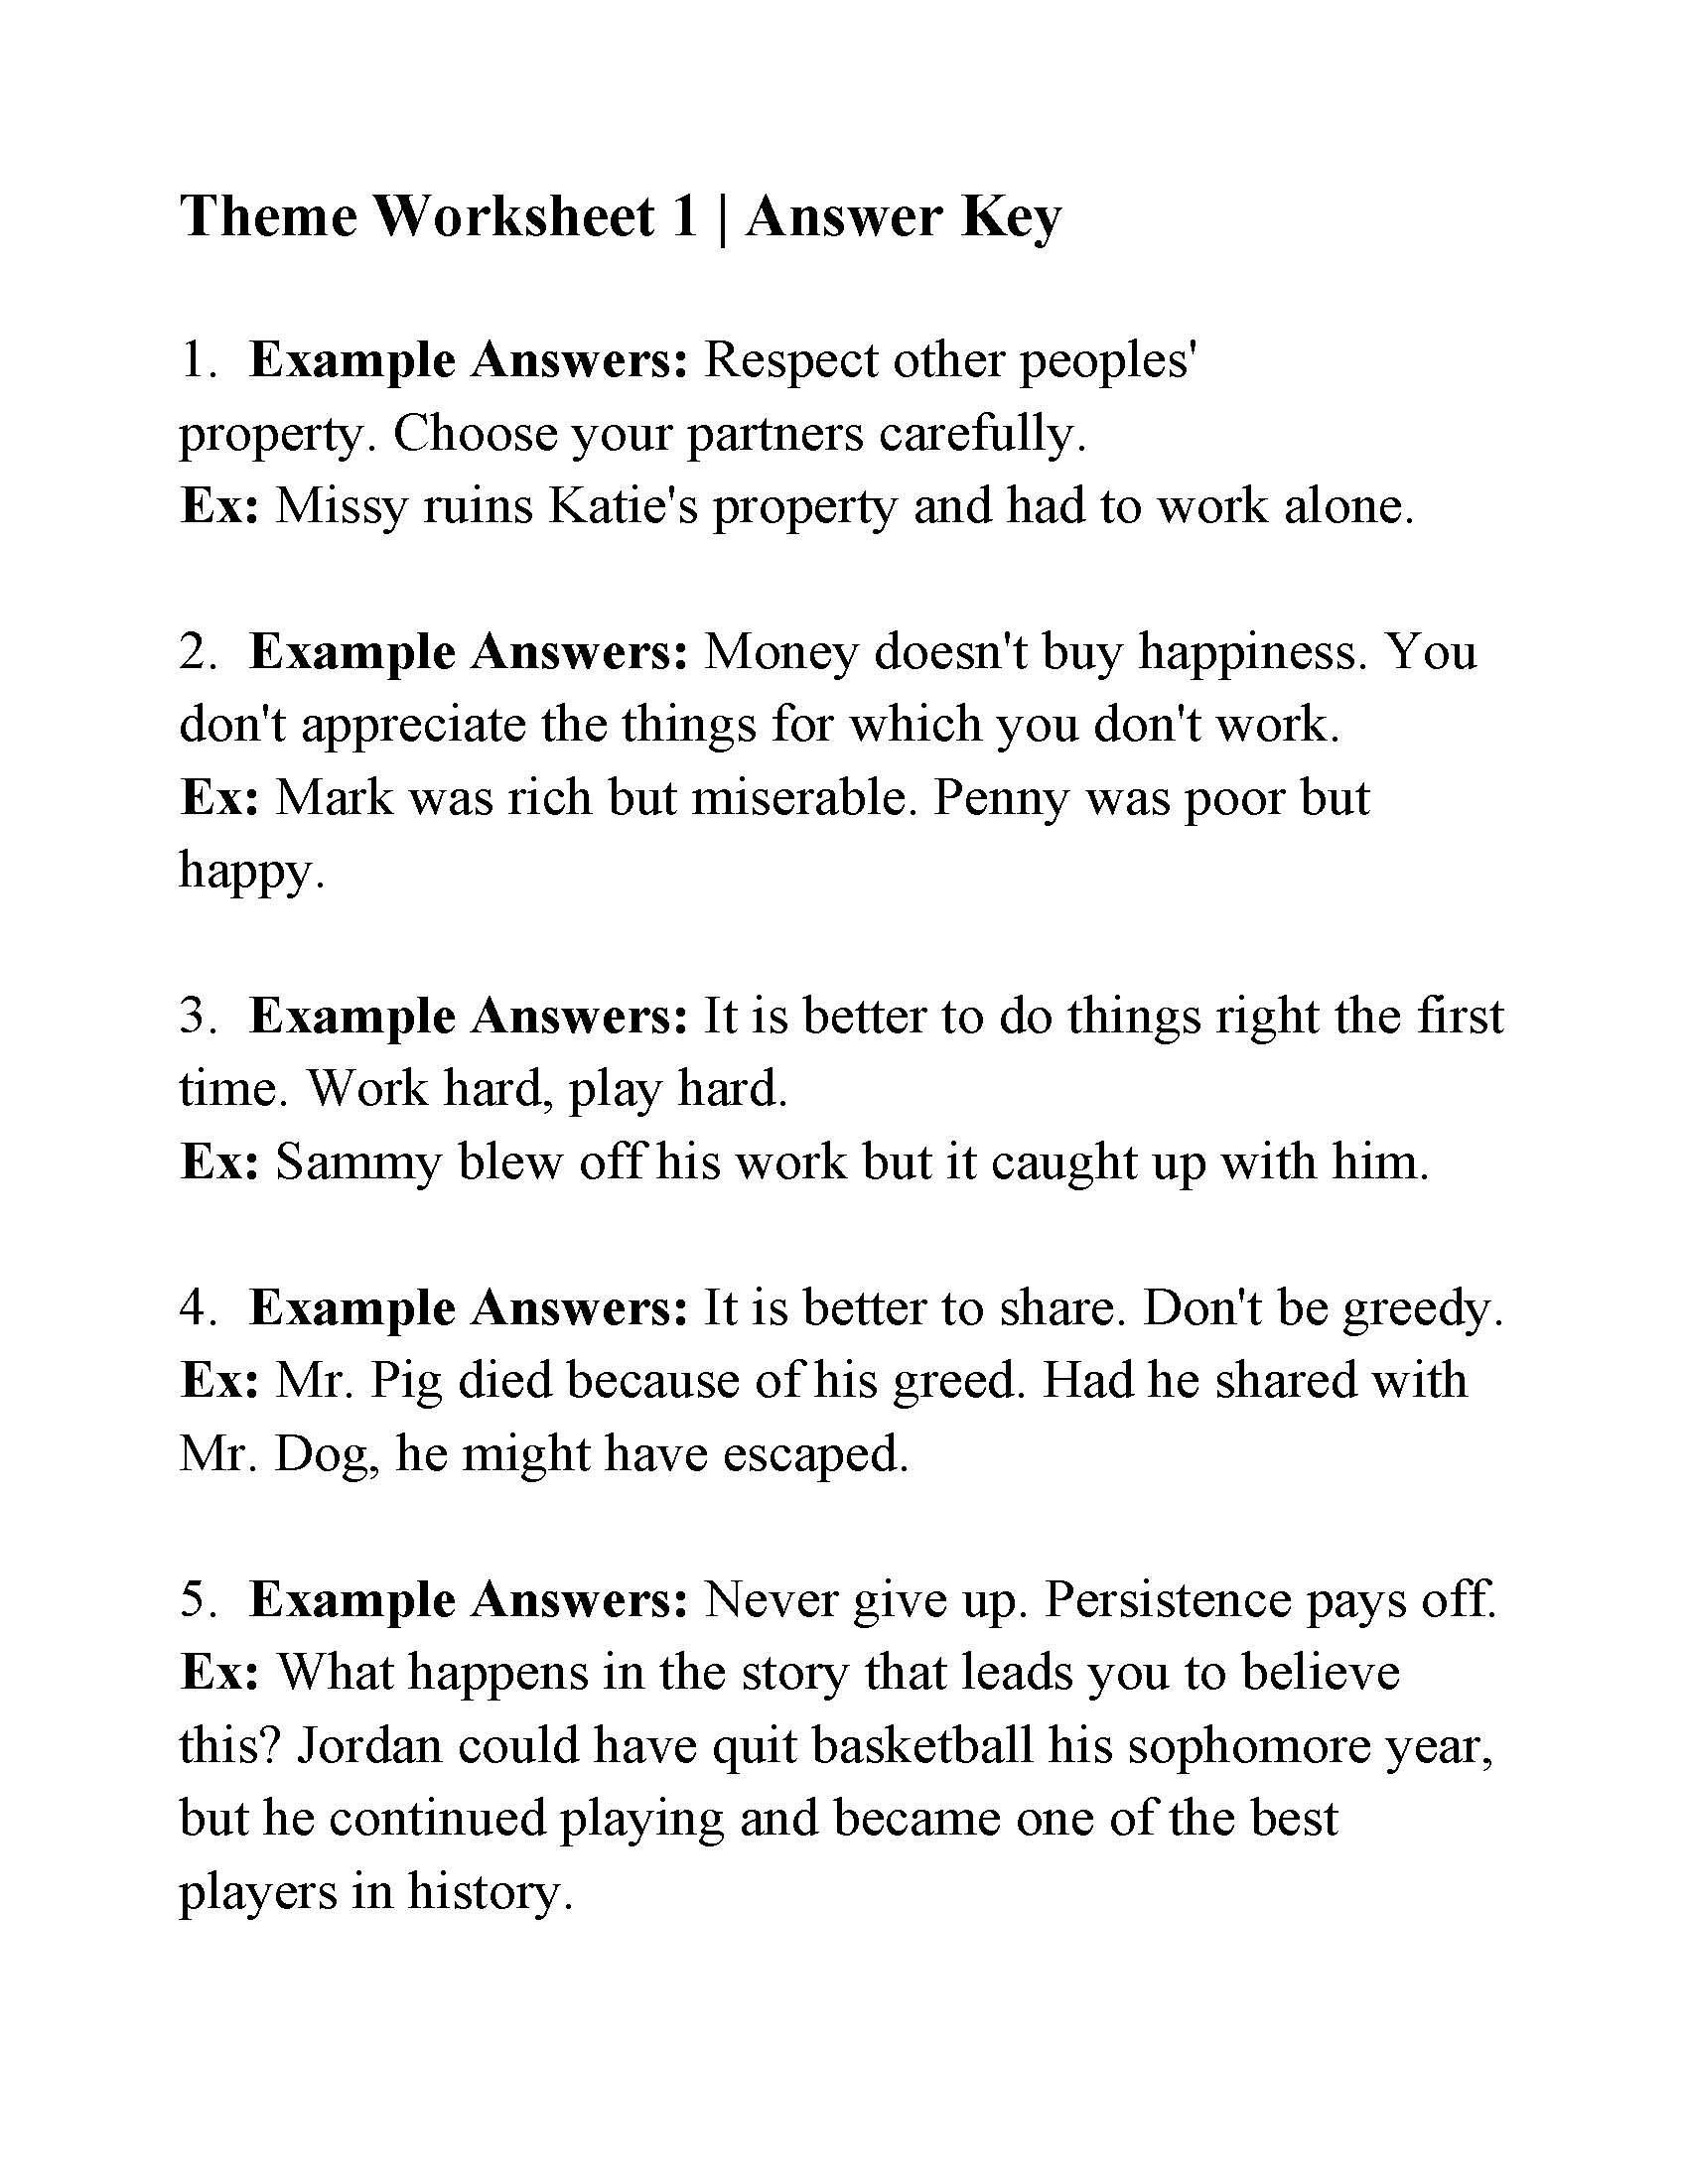 Theme Worksheet Grade 4 This is the Answer Key for the theme Worksheet 1